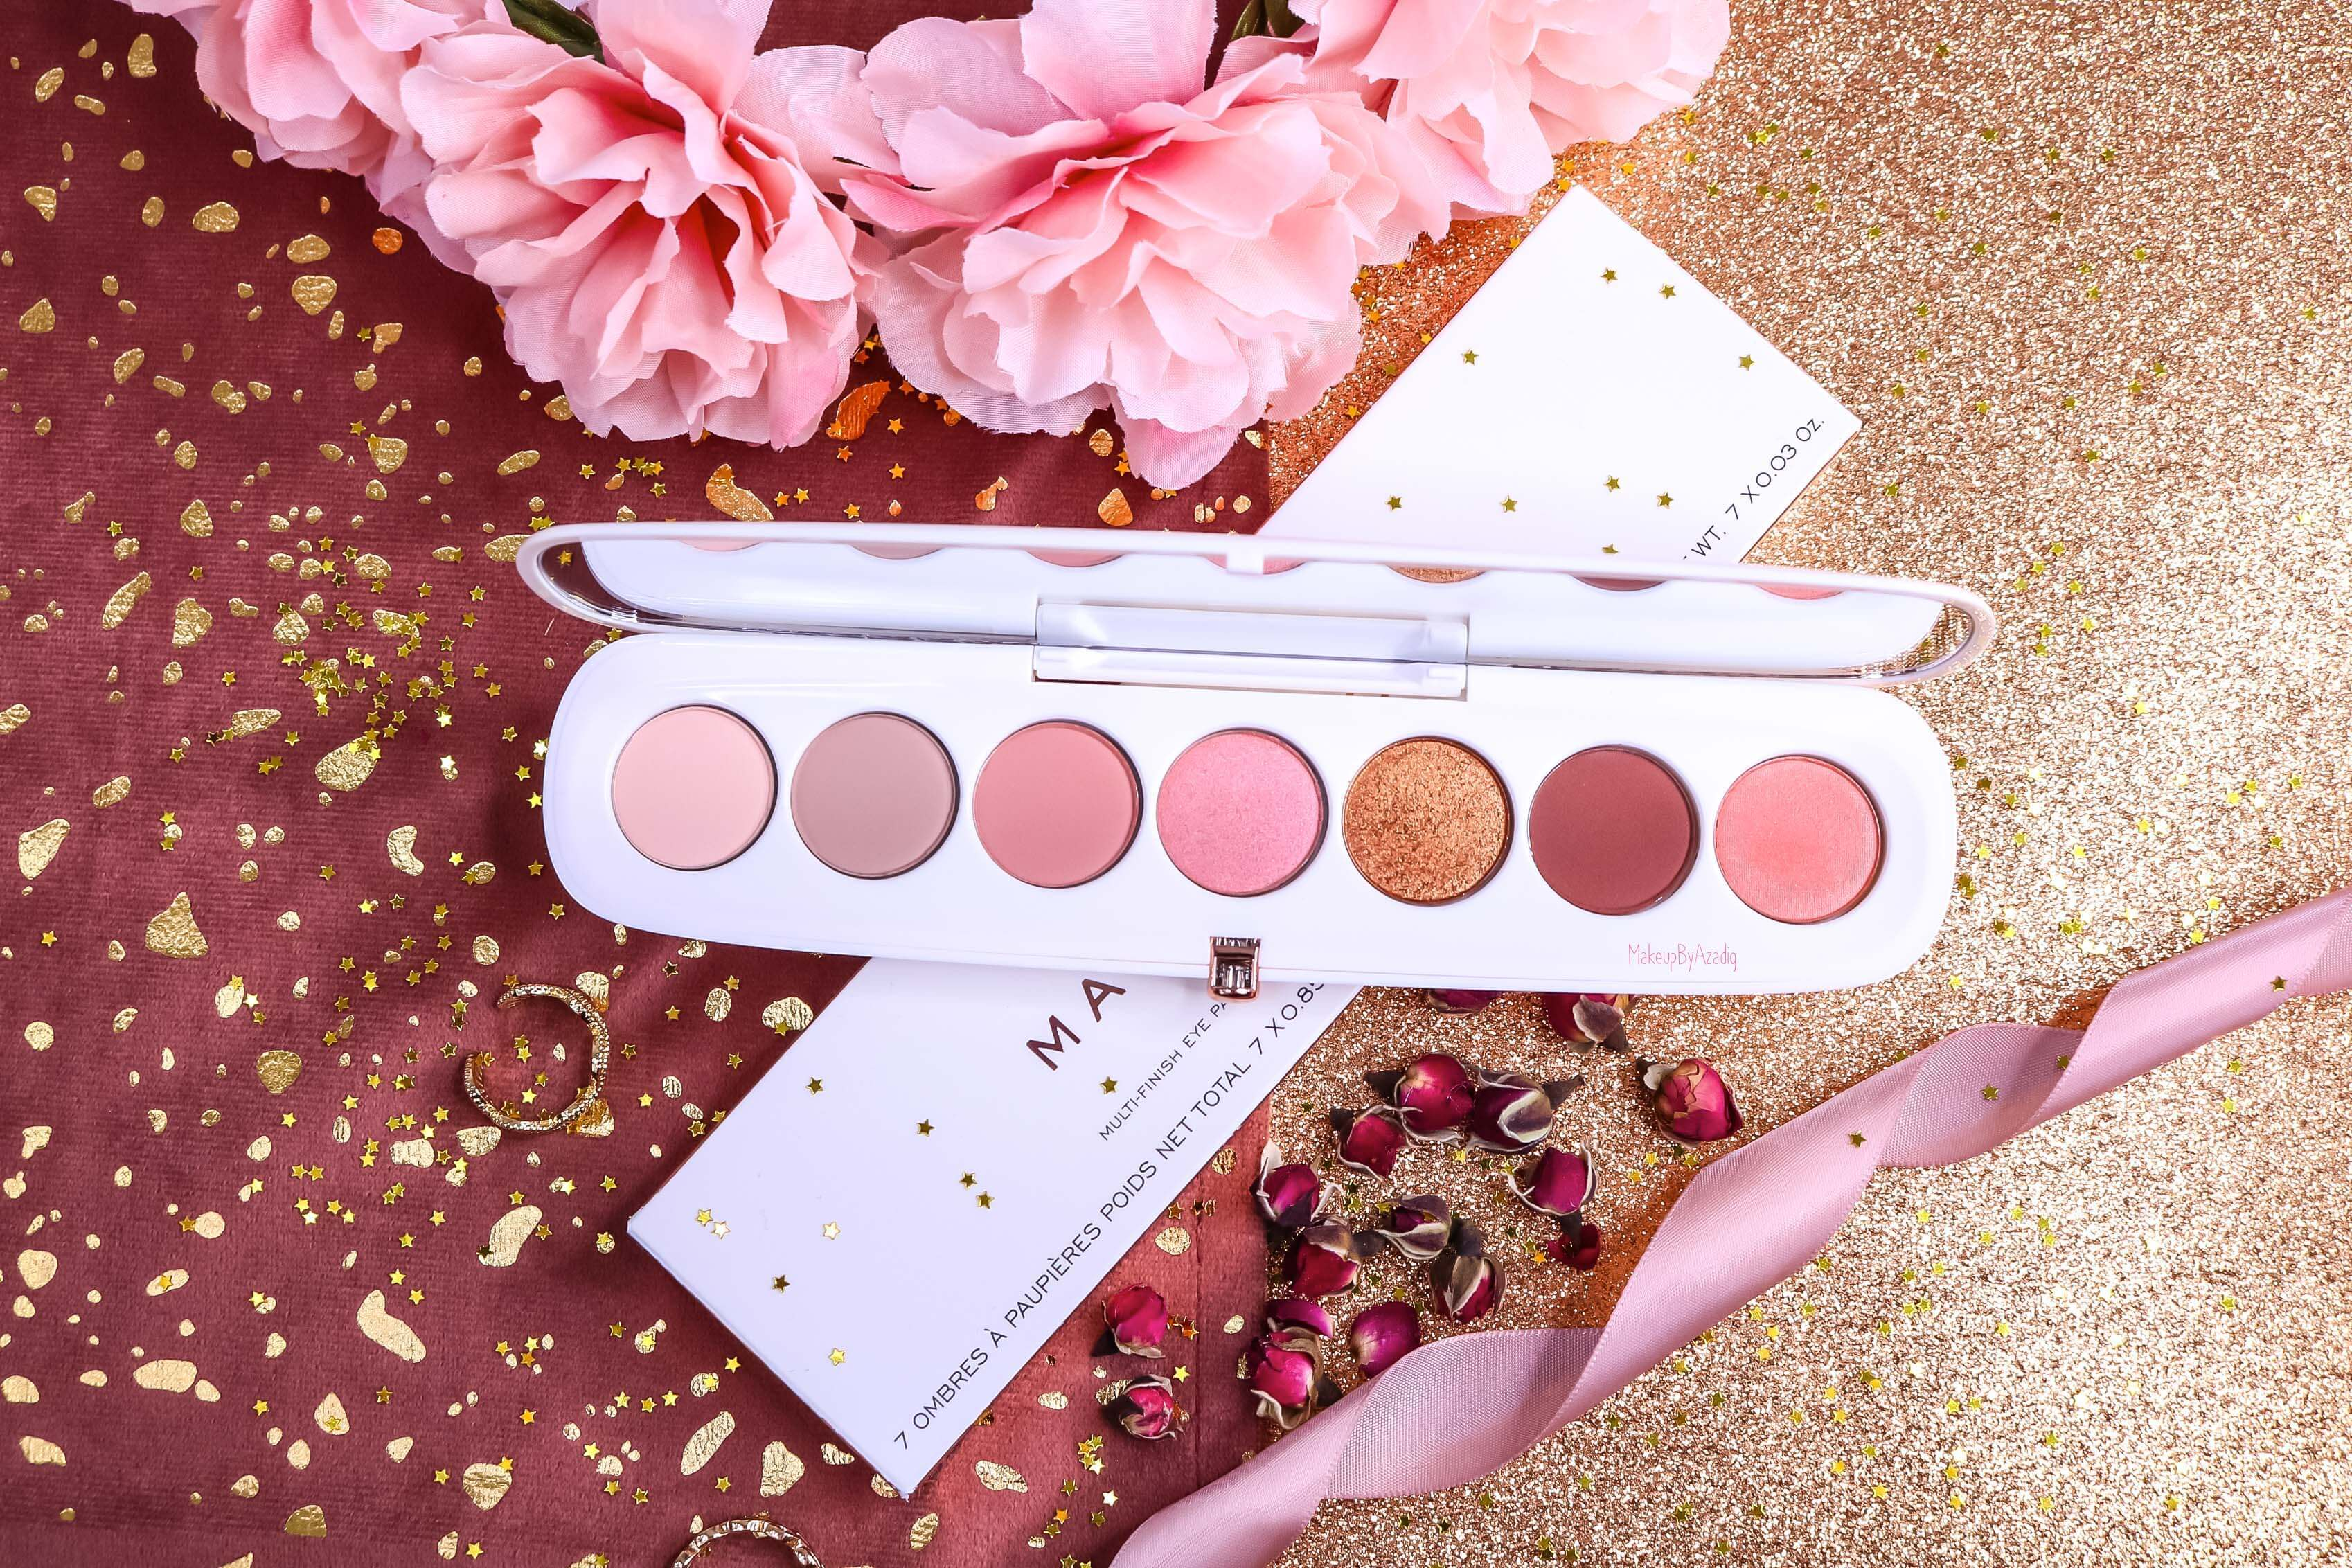 revue-palette-fards-paupieres-eye-conic-fantascene-marc-jacobs-gold-rose-sephora-france-avis-prix-swatch-tenue-makeupbyazadig-pink